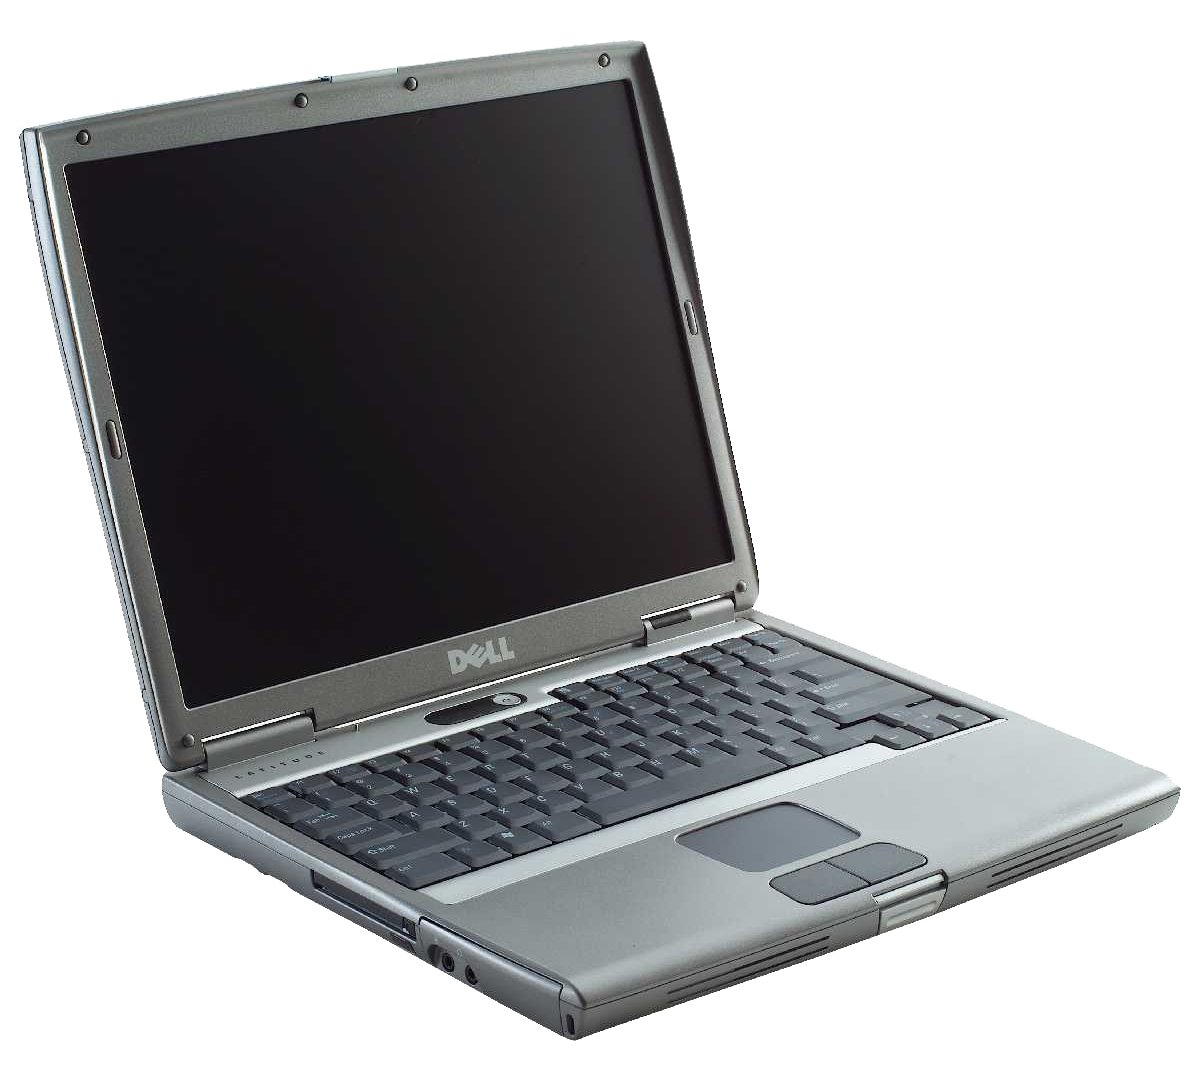 DELL LATITUDE D610 LAPTOP WIFI WINDOWS 8 DRIVER DOWNLOAD